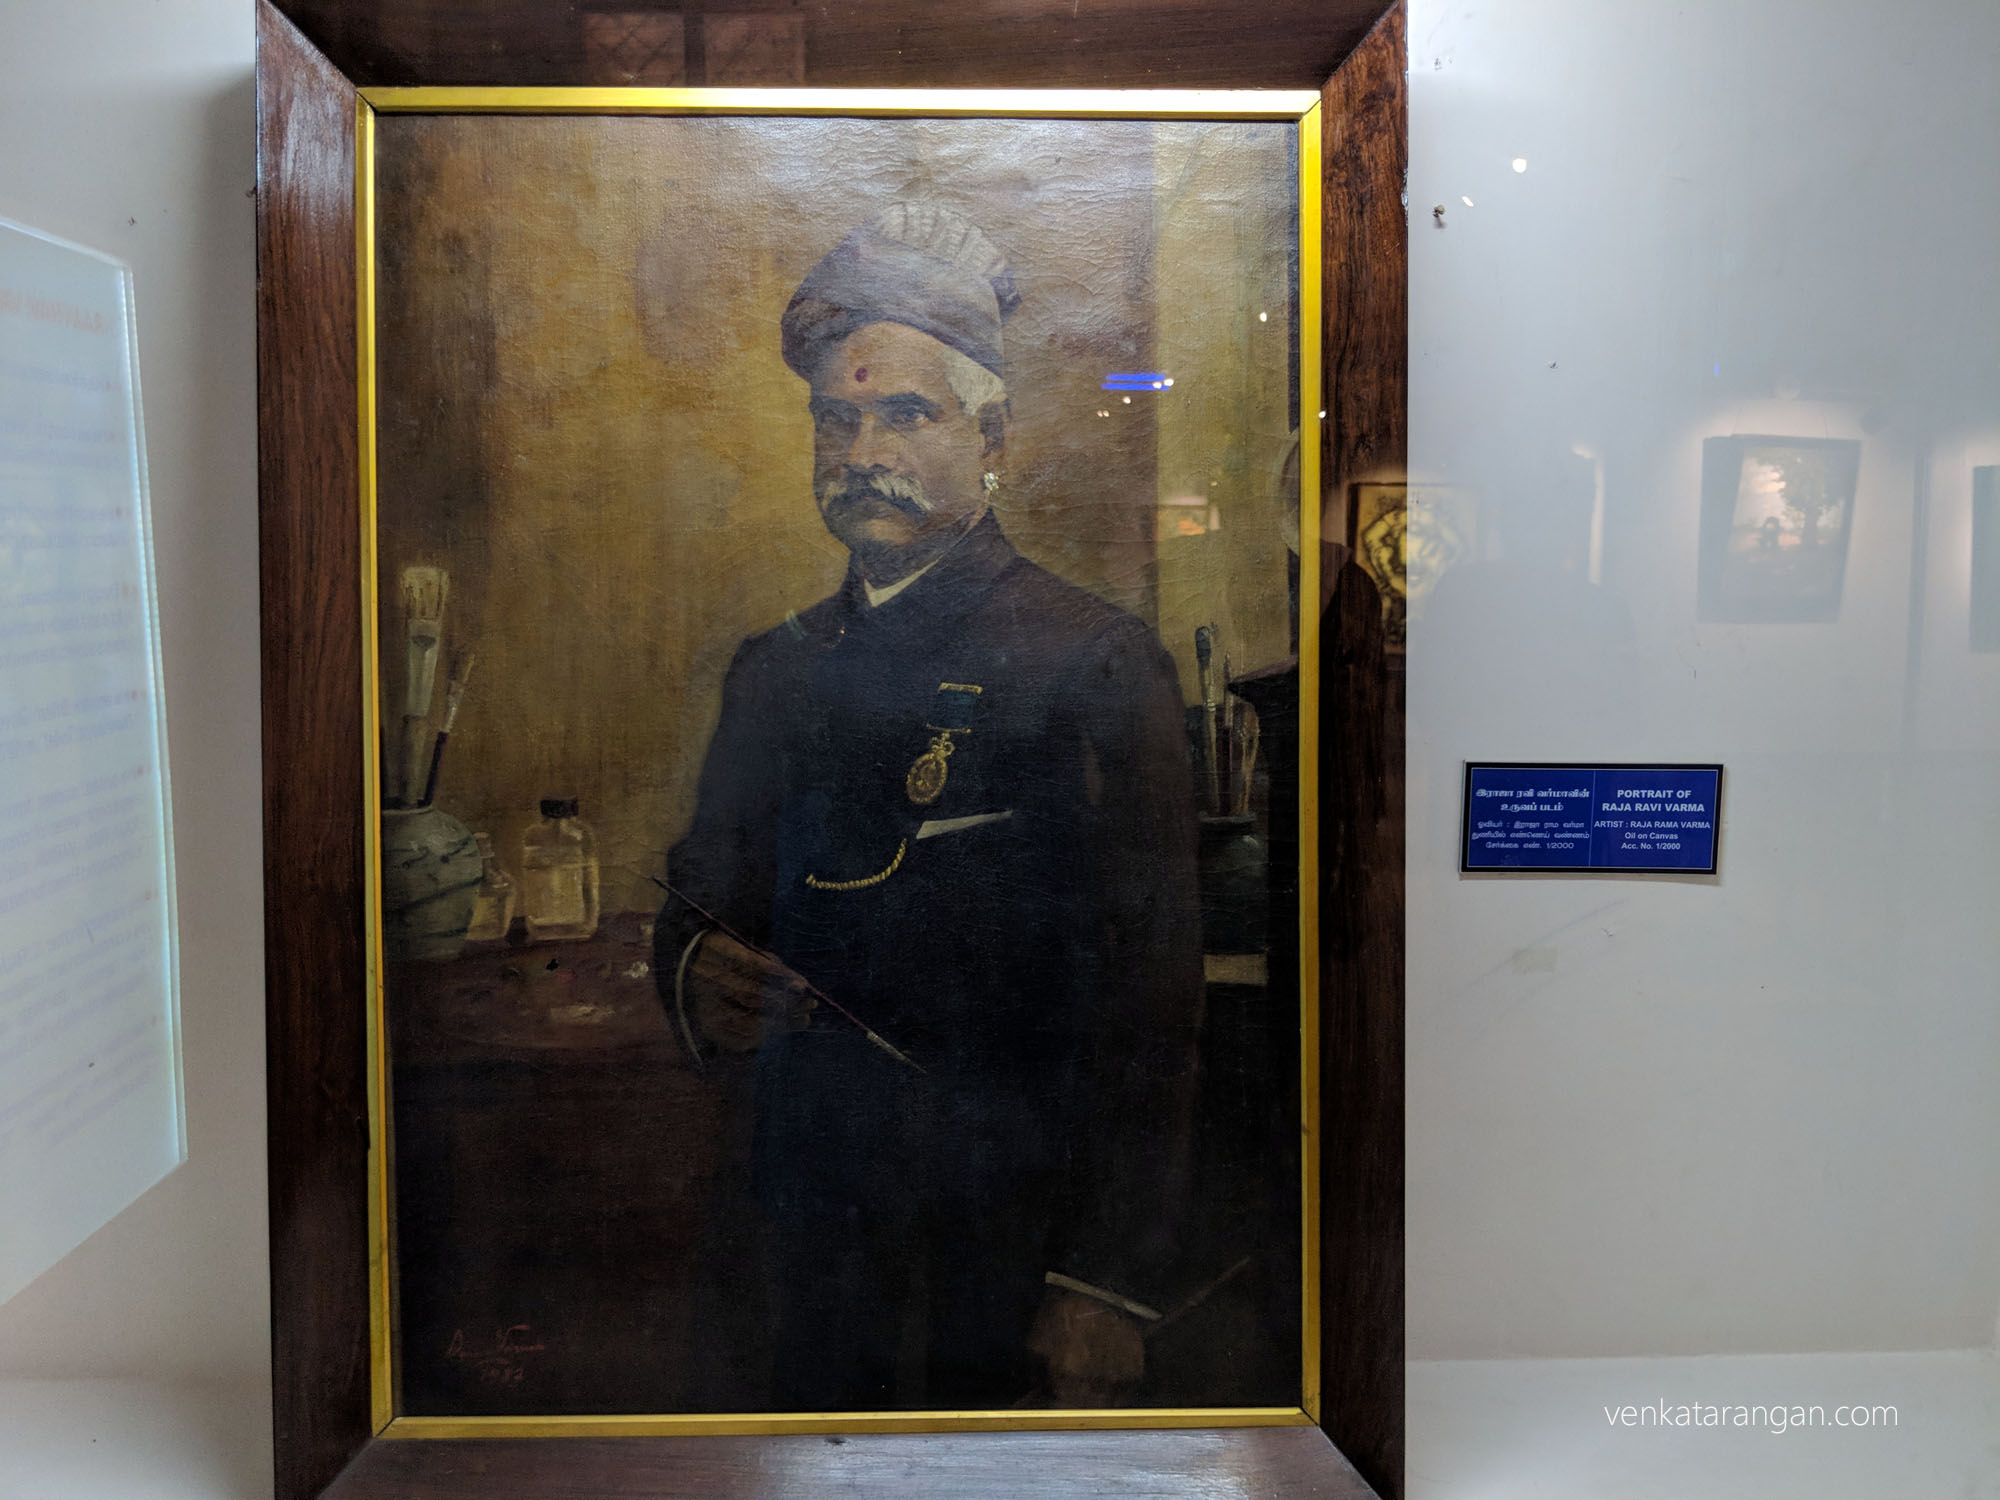 Portrait of Raja Ravi Varma (29 April 1848 – 2 October 1906) was a celebrated Indian painter and artist. He is considered among the greatest painters in the history of Indian art, his works are held to be among the best examples of the fusion of European techniques with a purely Indian sensibility.